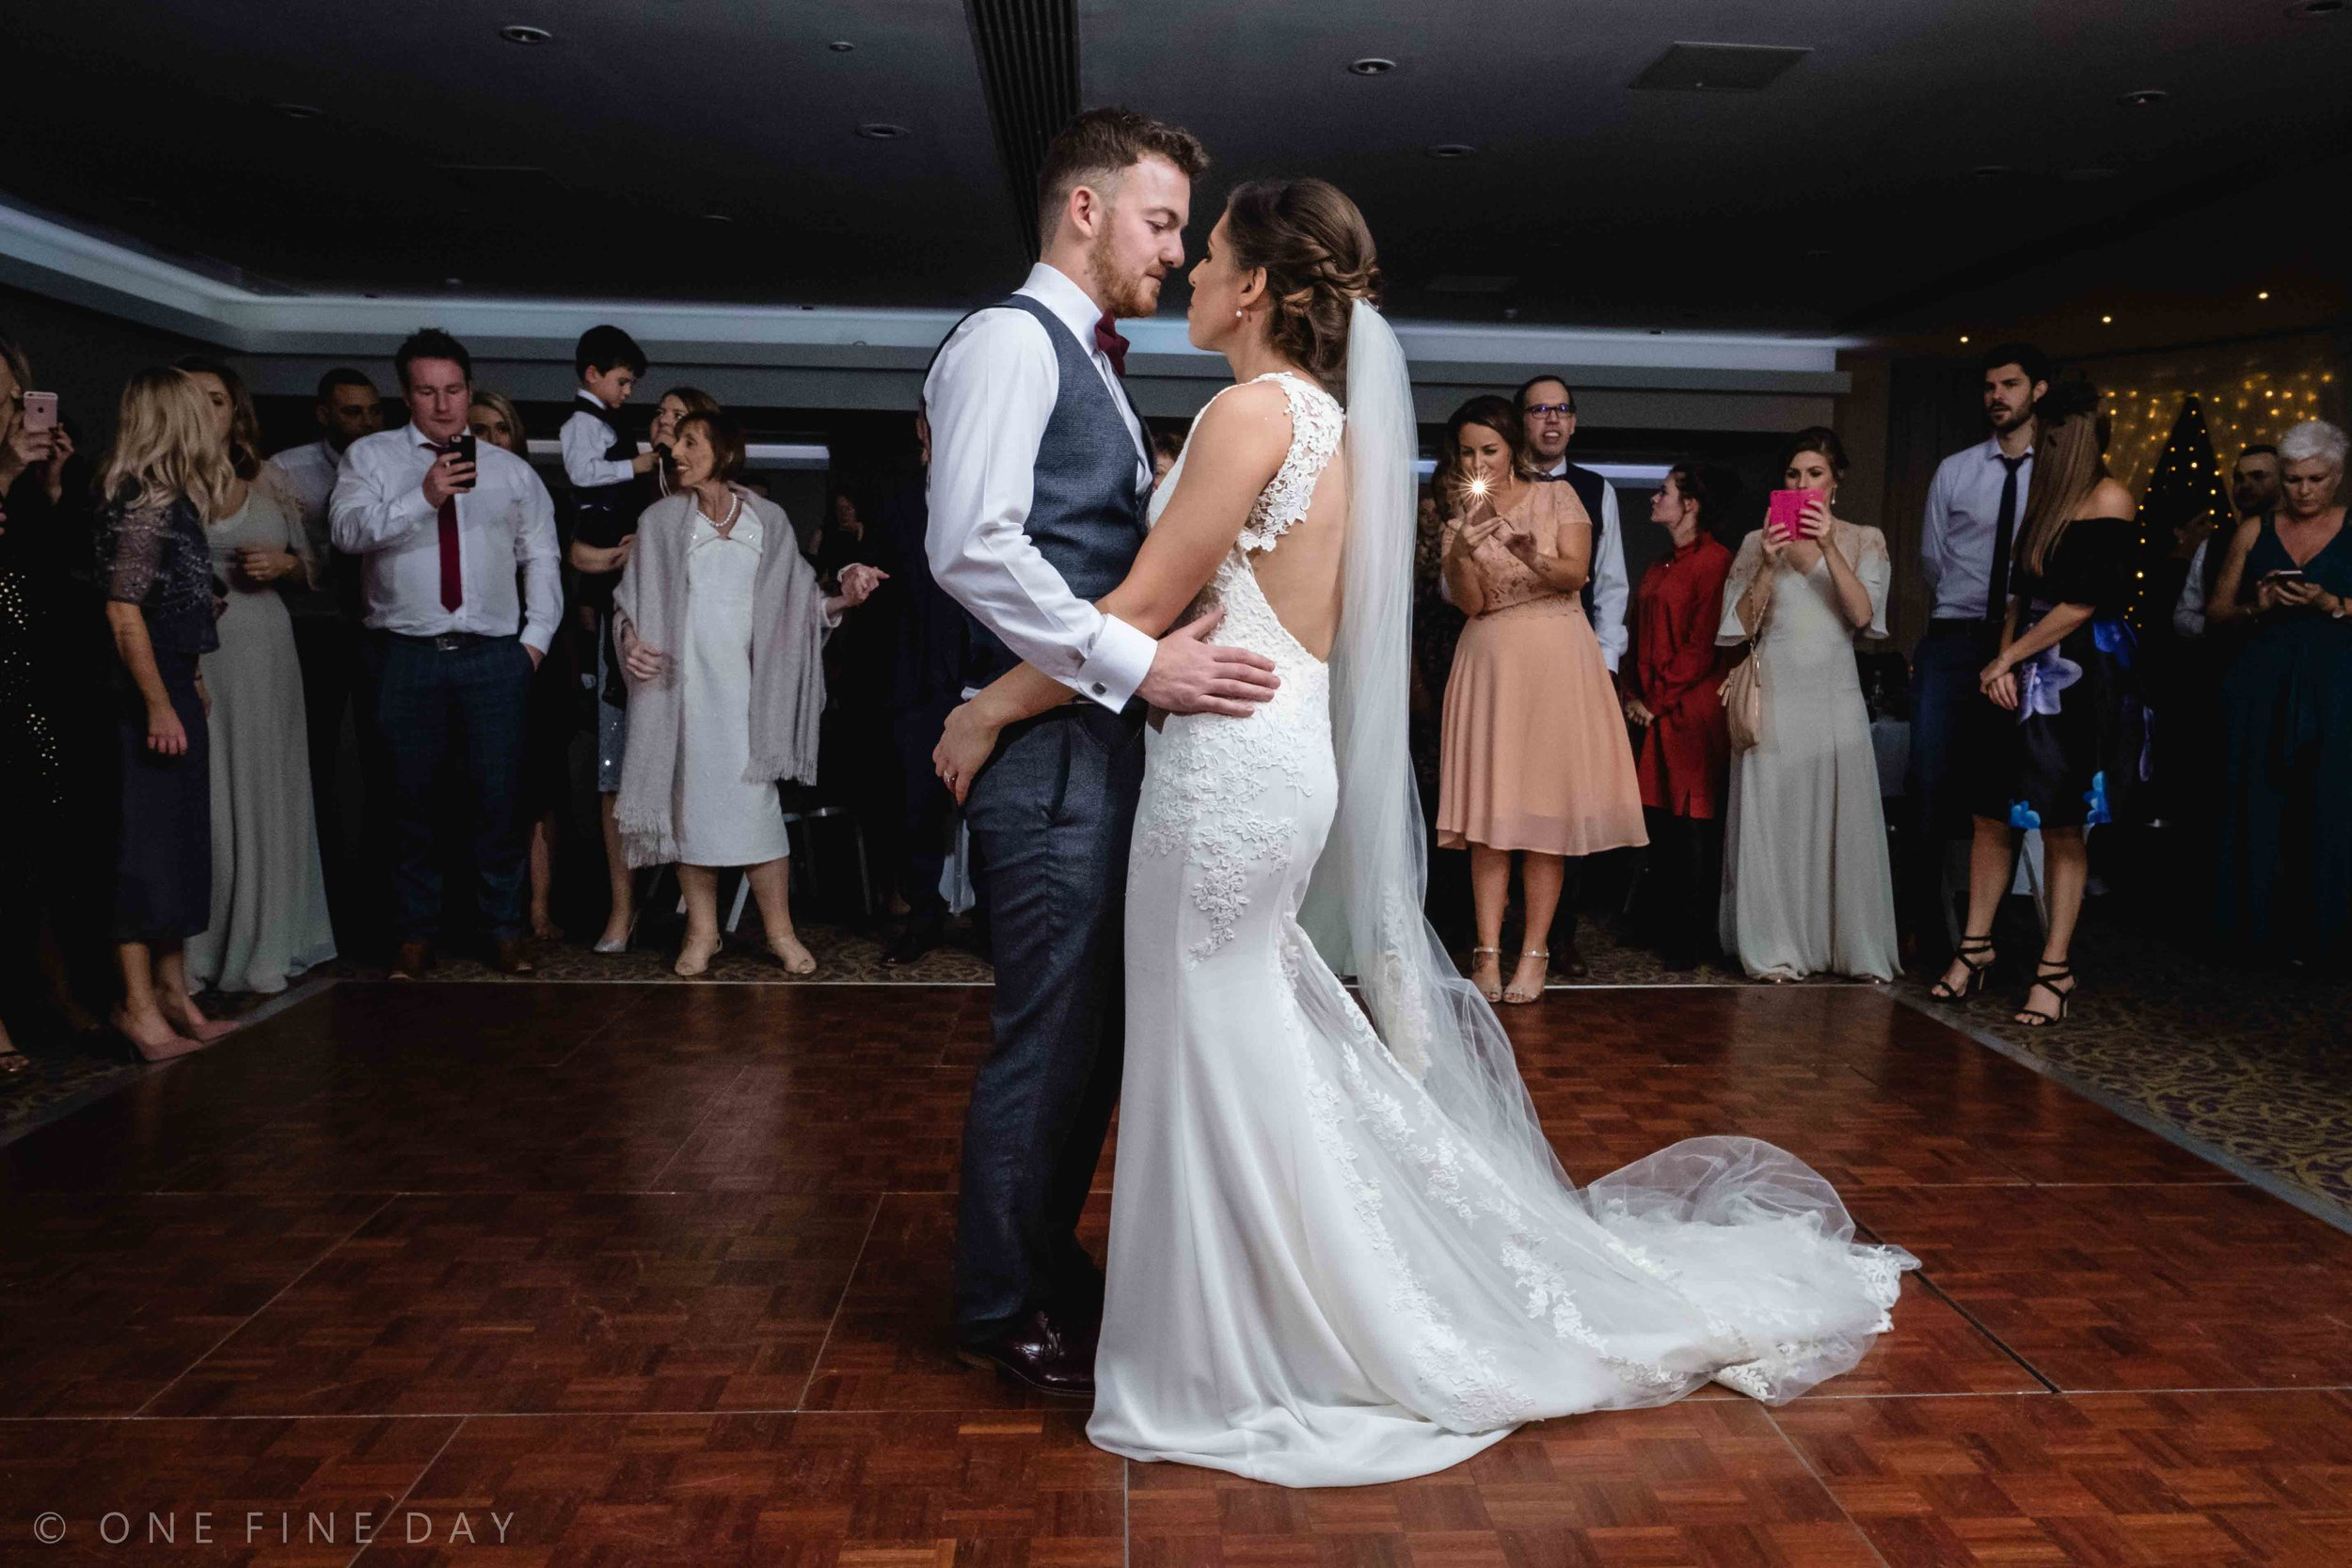 Wedding First dance at Ballygally Castle